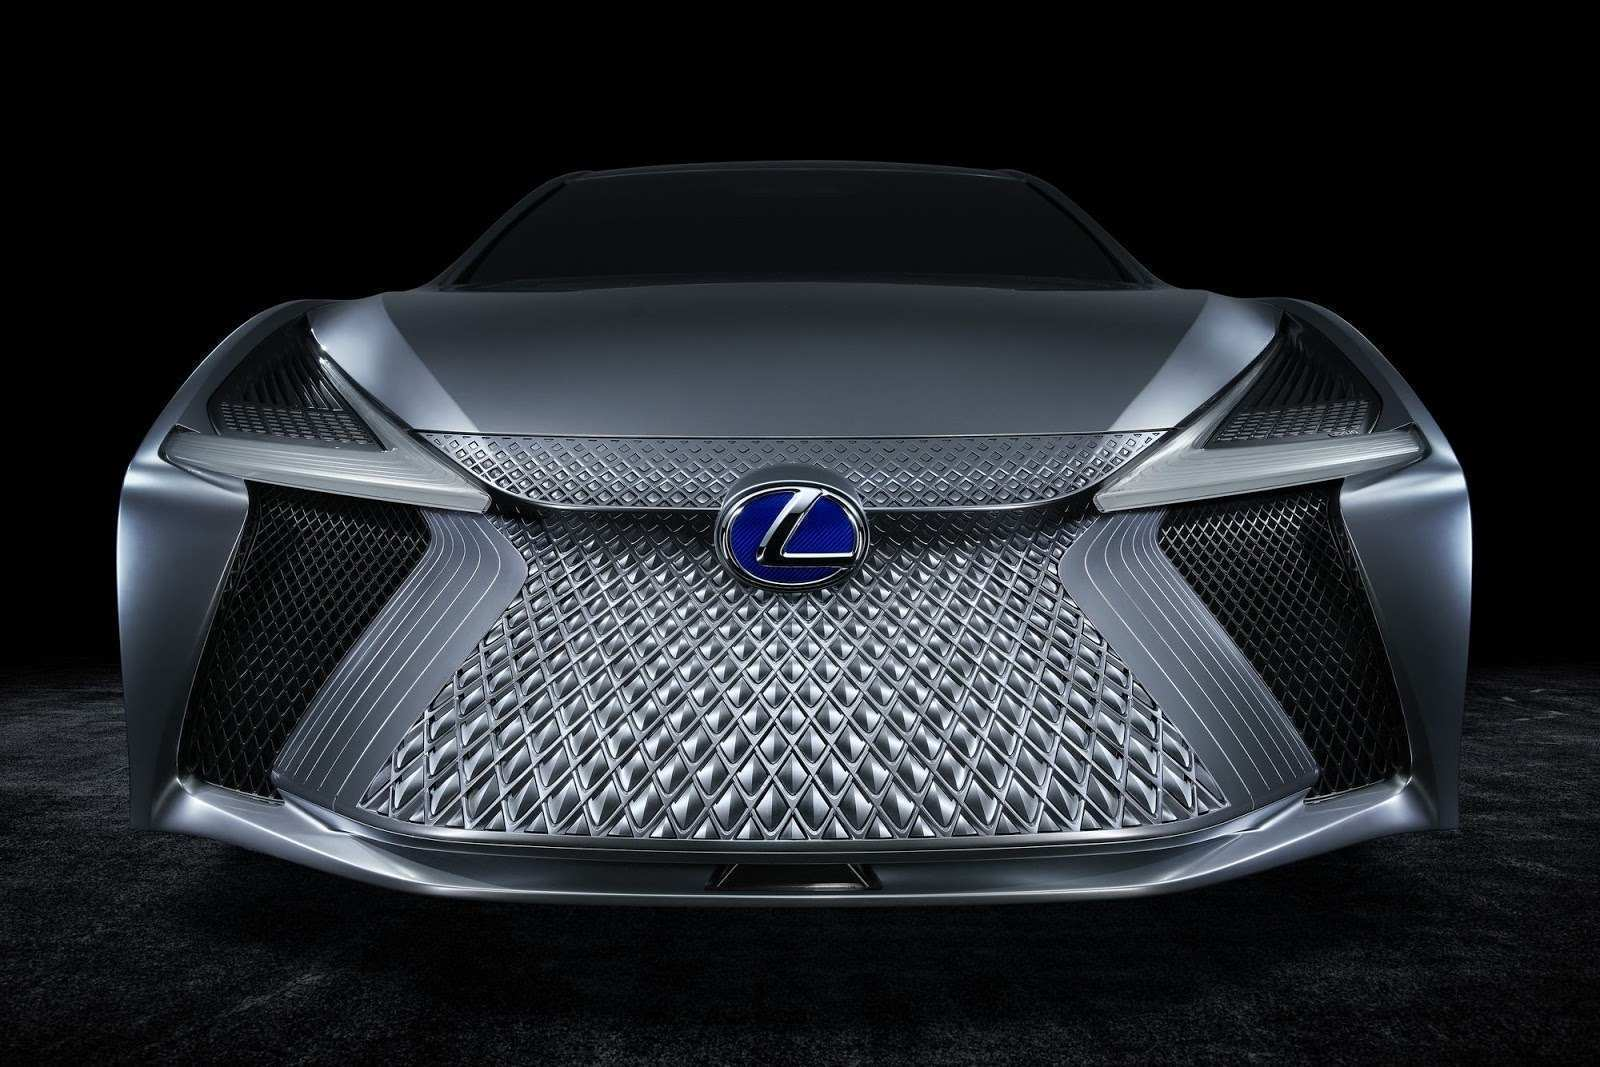 63 All New 2020 Lexus LSs Redesign and Concept by 2020 Lexus LSs